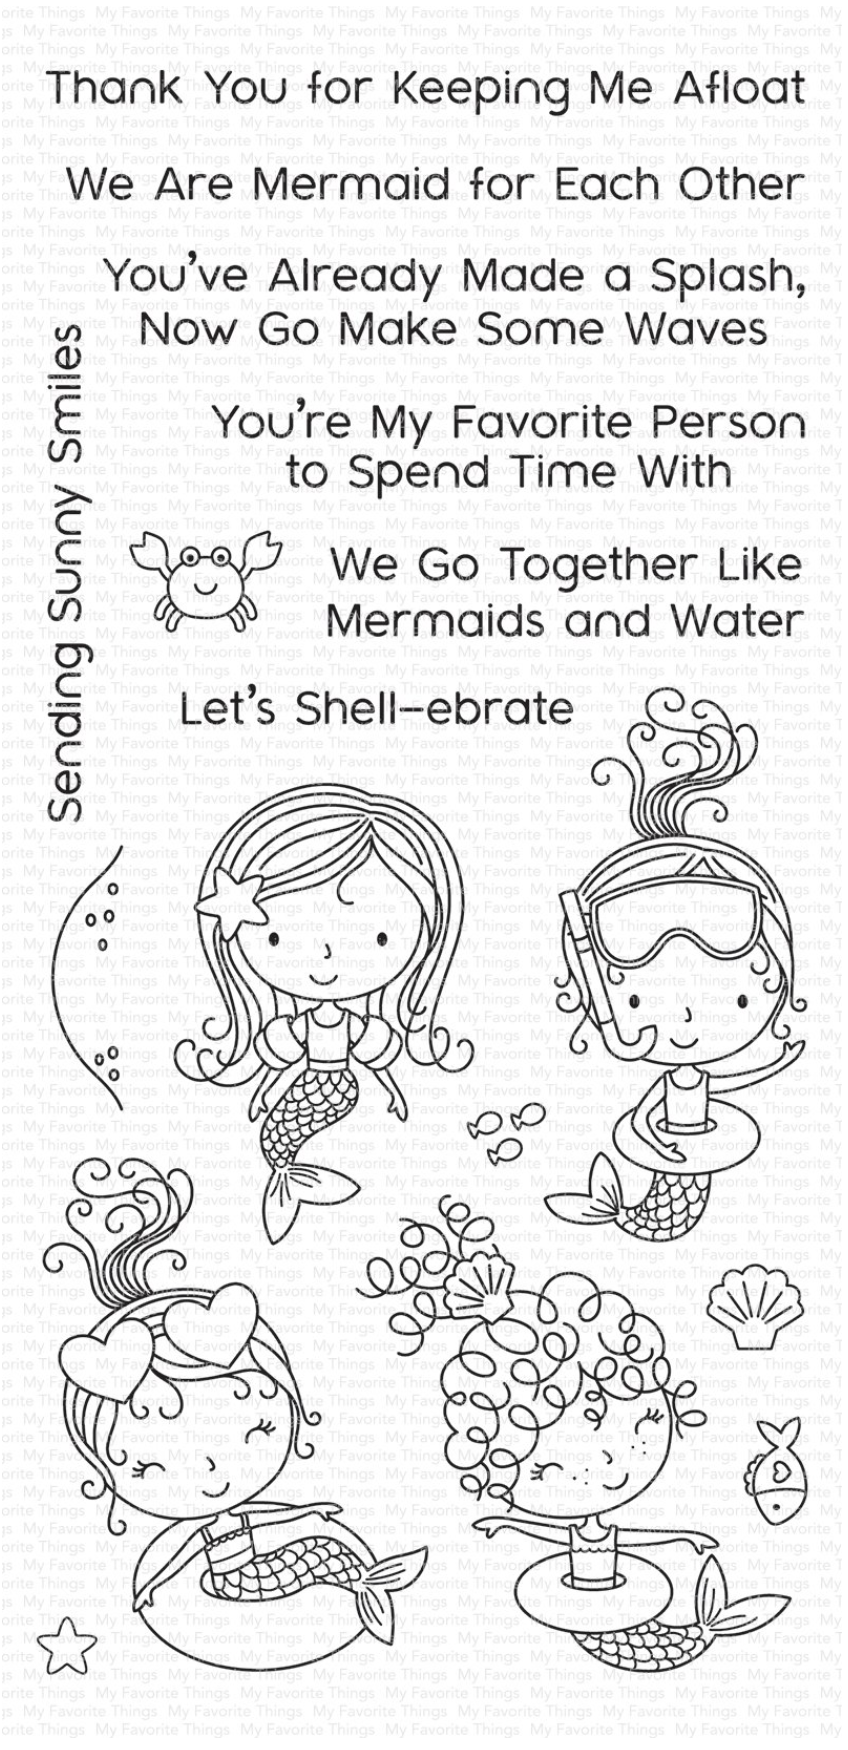 Mermaid for Each Other WS